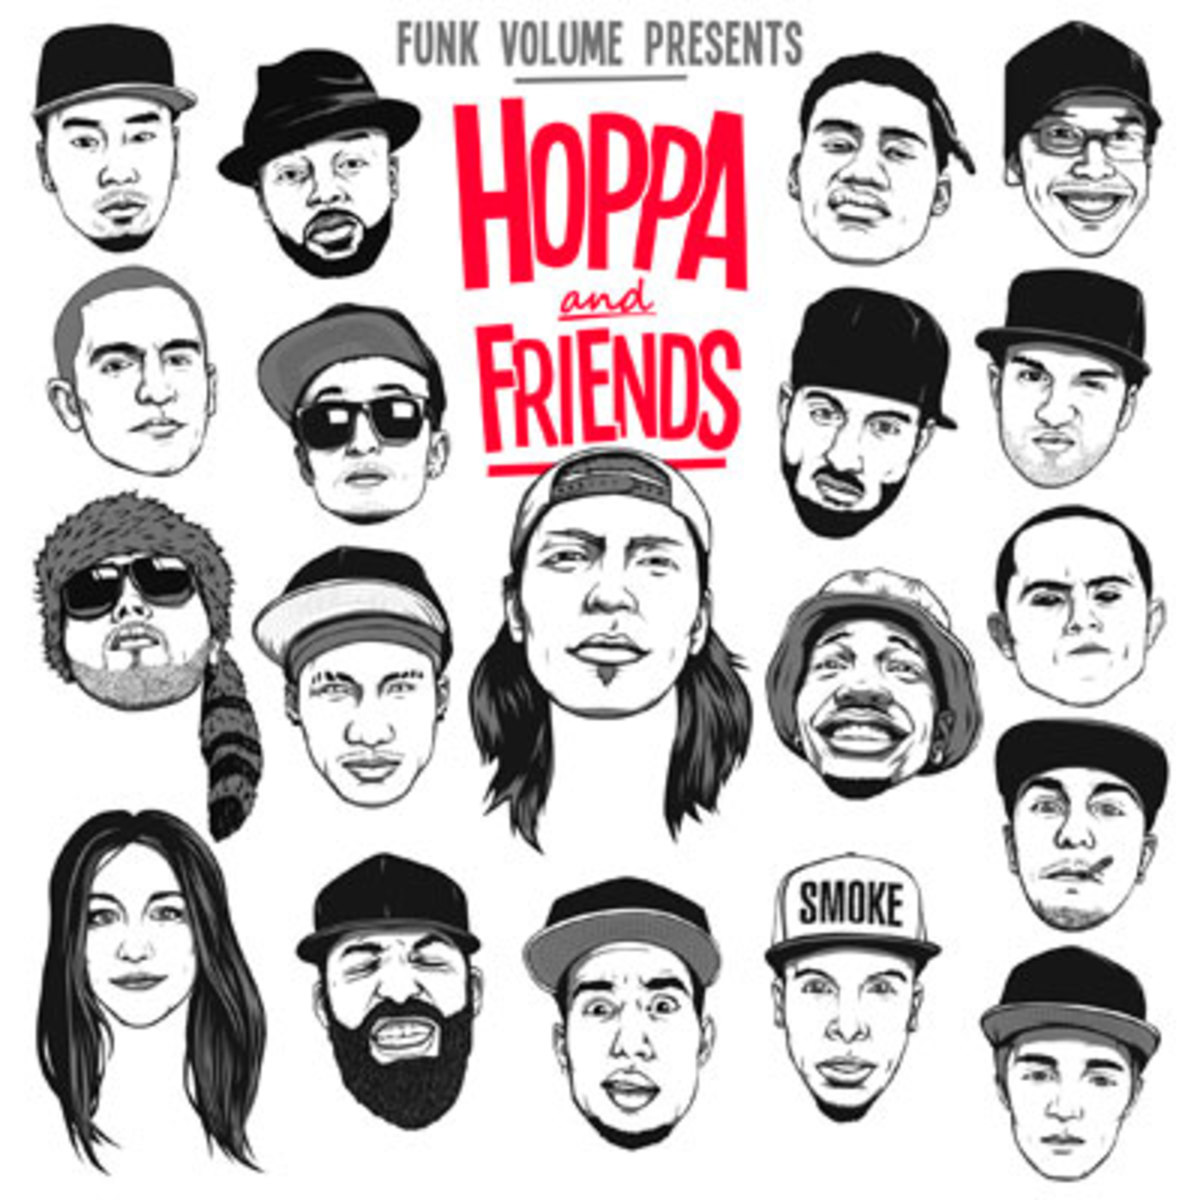 dj-hoppa-hoppa-and-friends.jpg